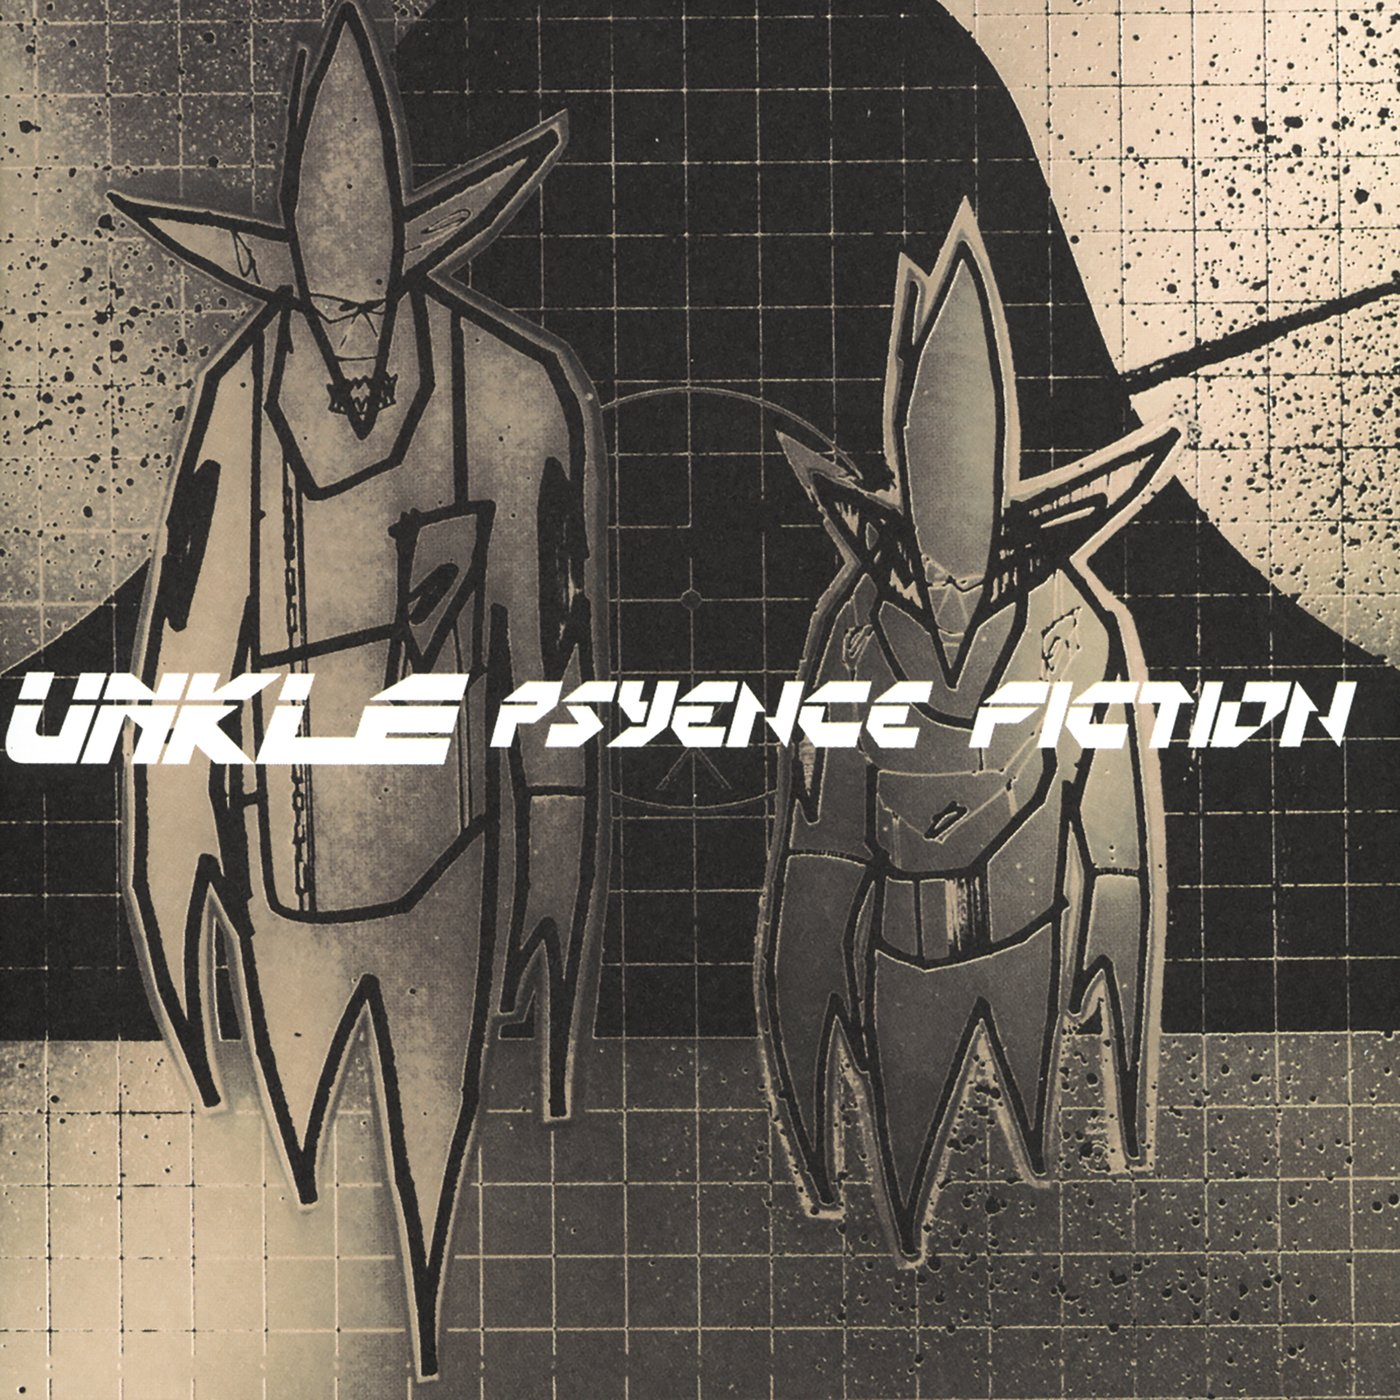 Psyence Fiction [Vinyl]